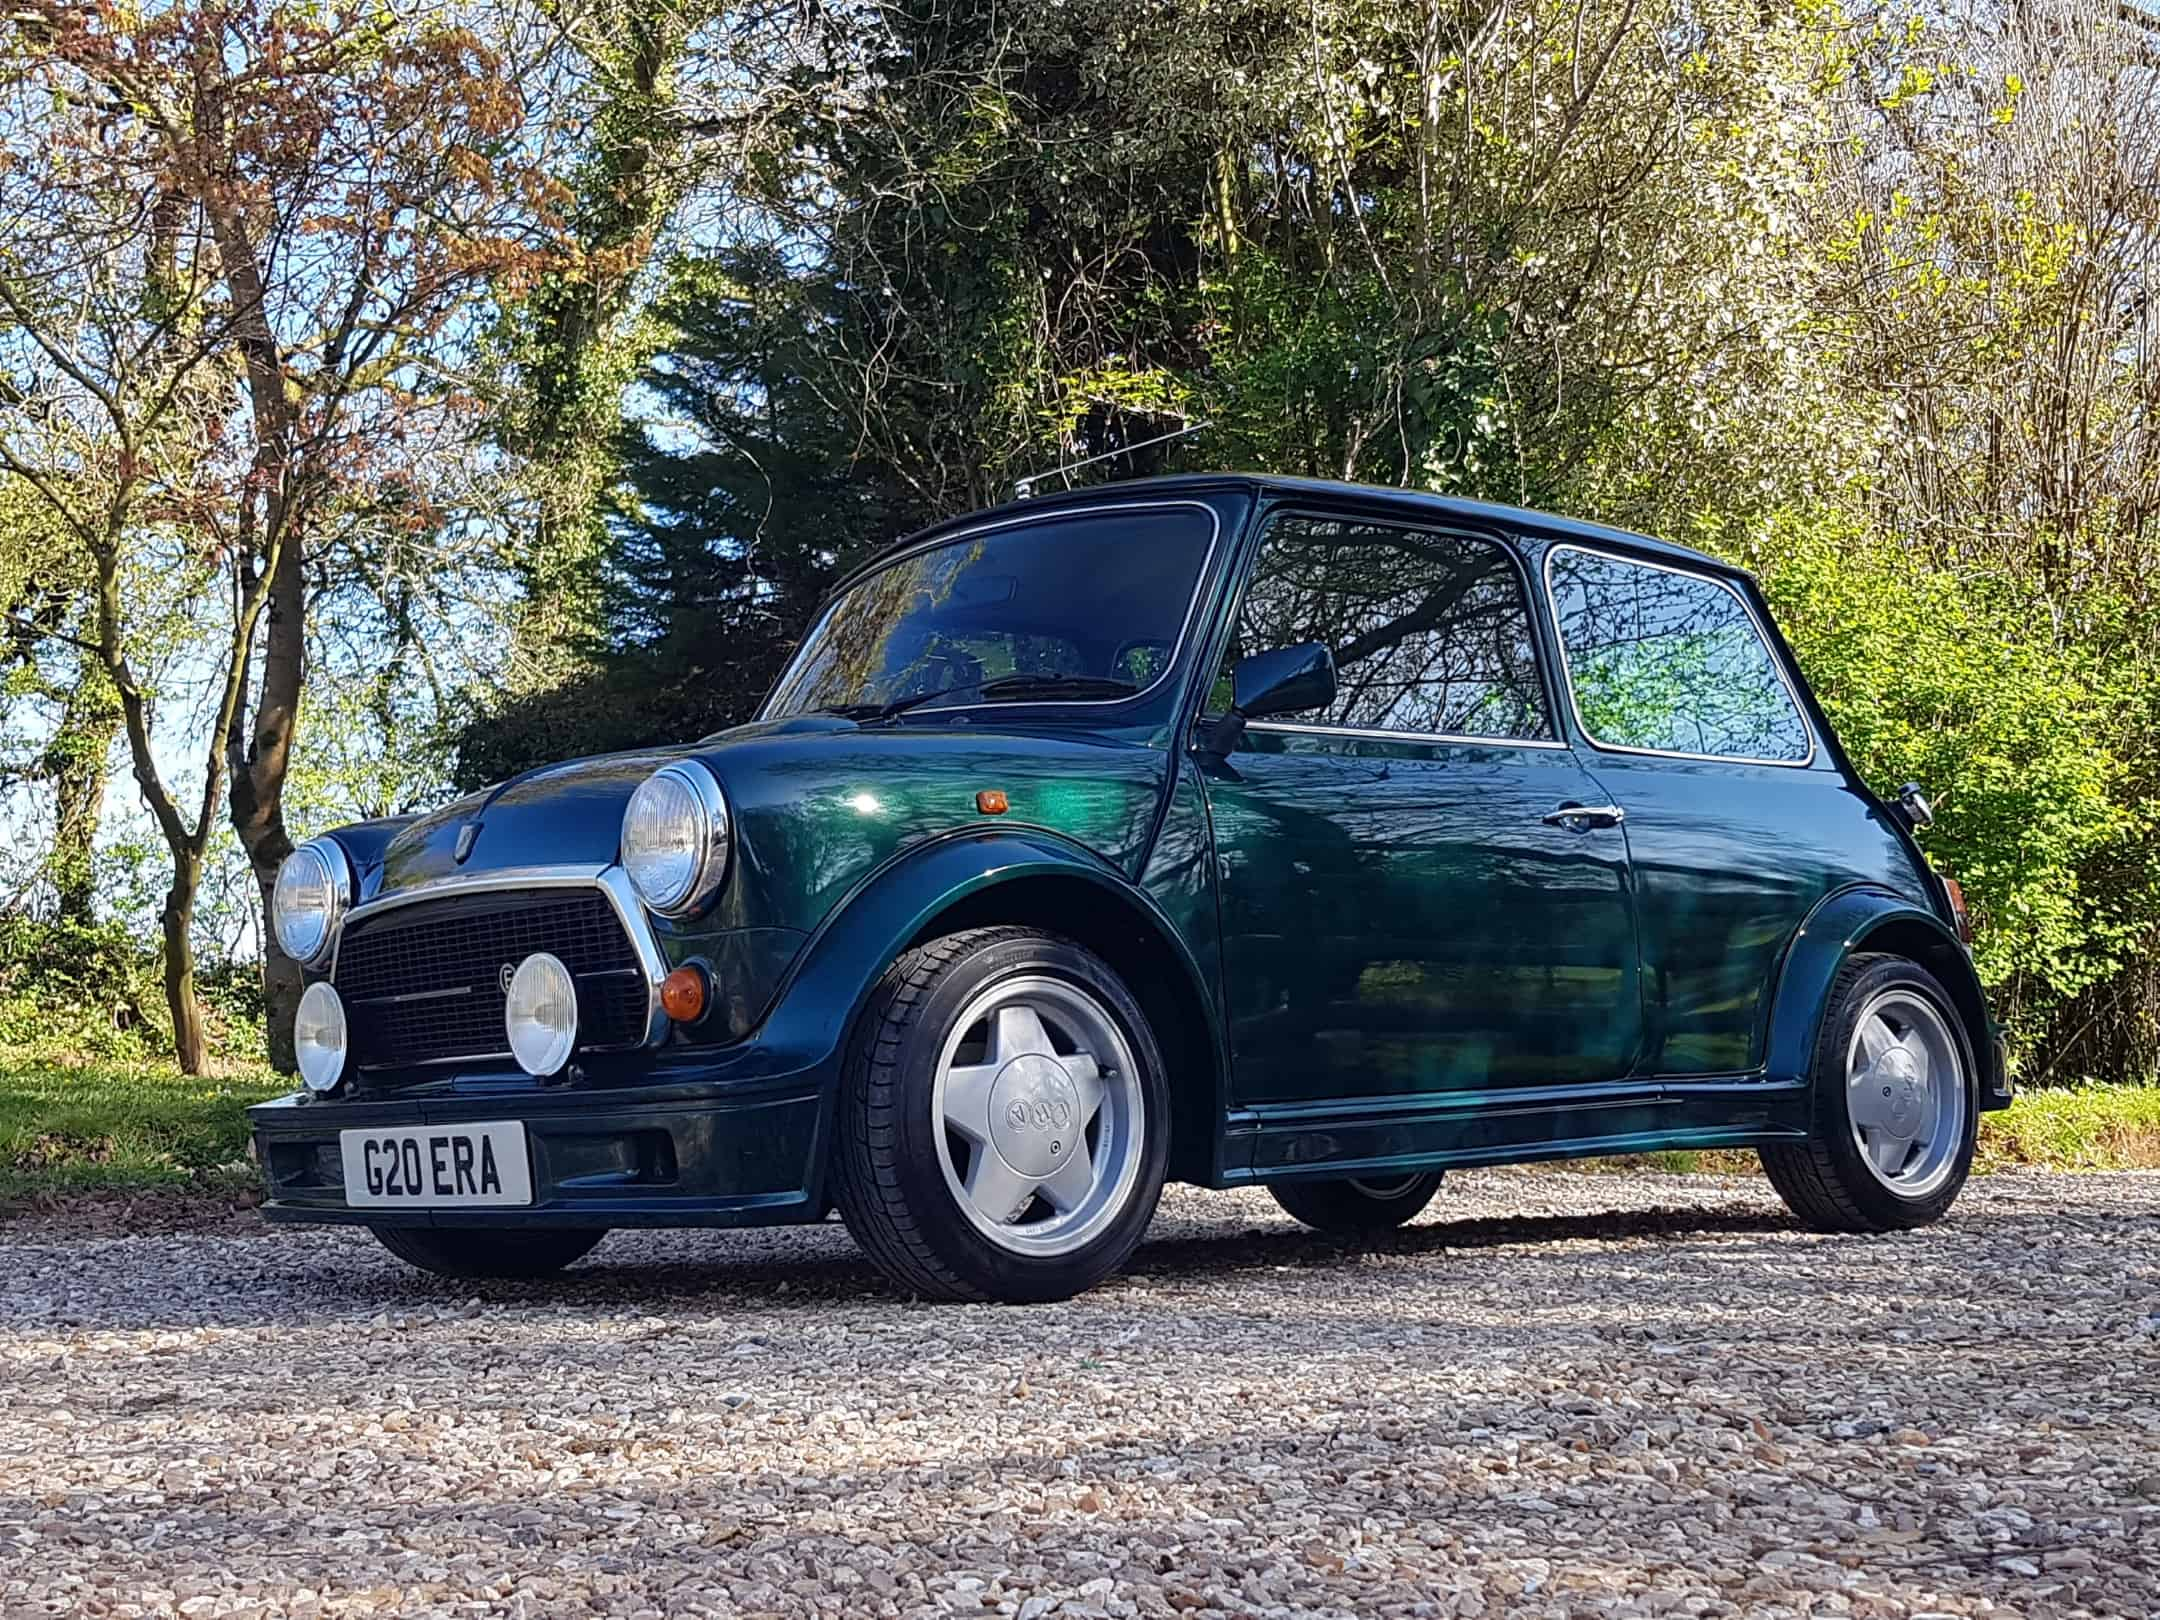 ** NOW SOLD **. Very Rare 1990 Mini ERA Turbo On Just 21000 Miles From New